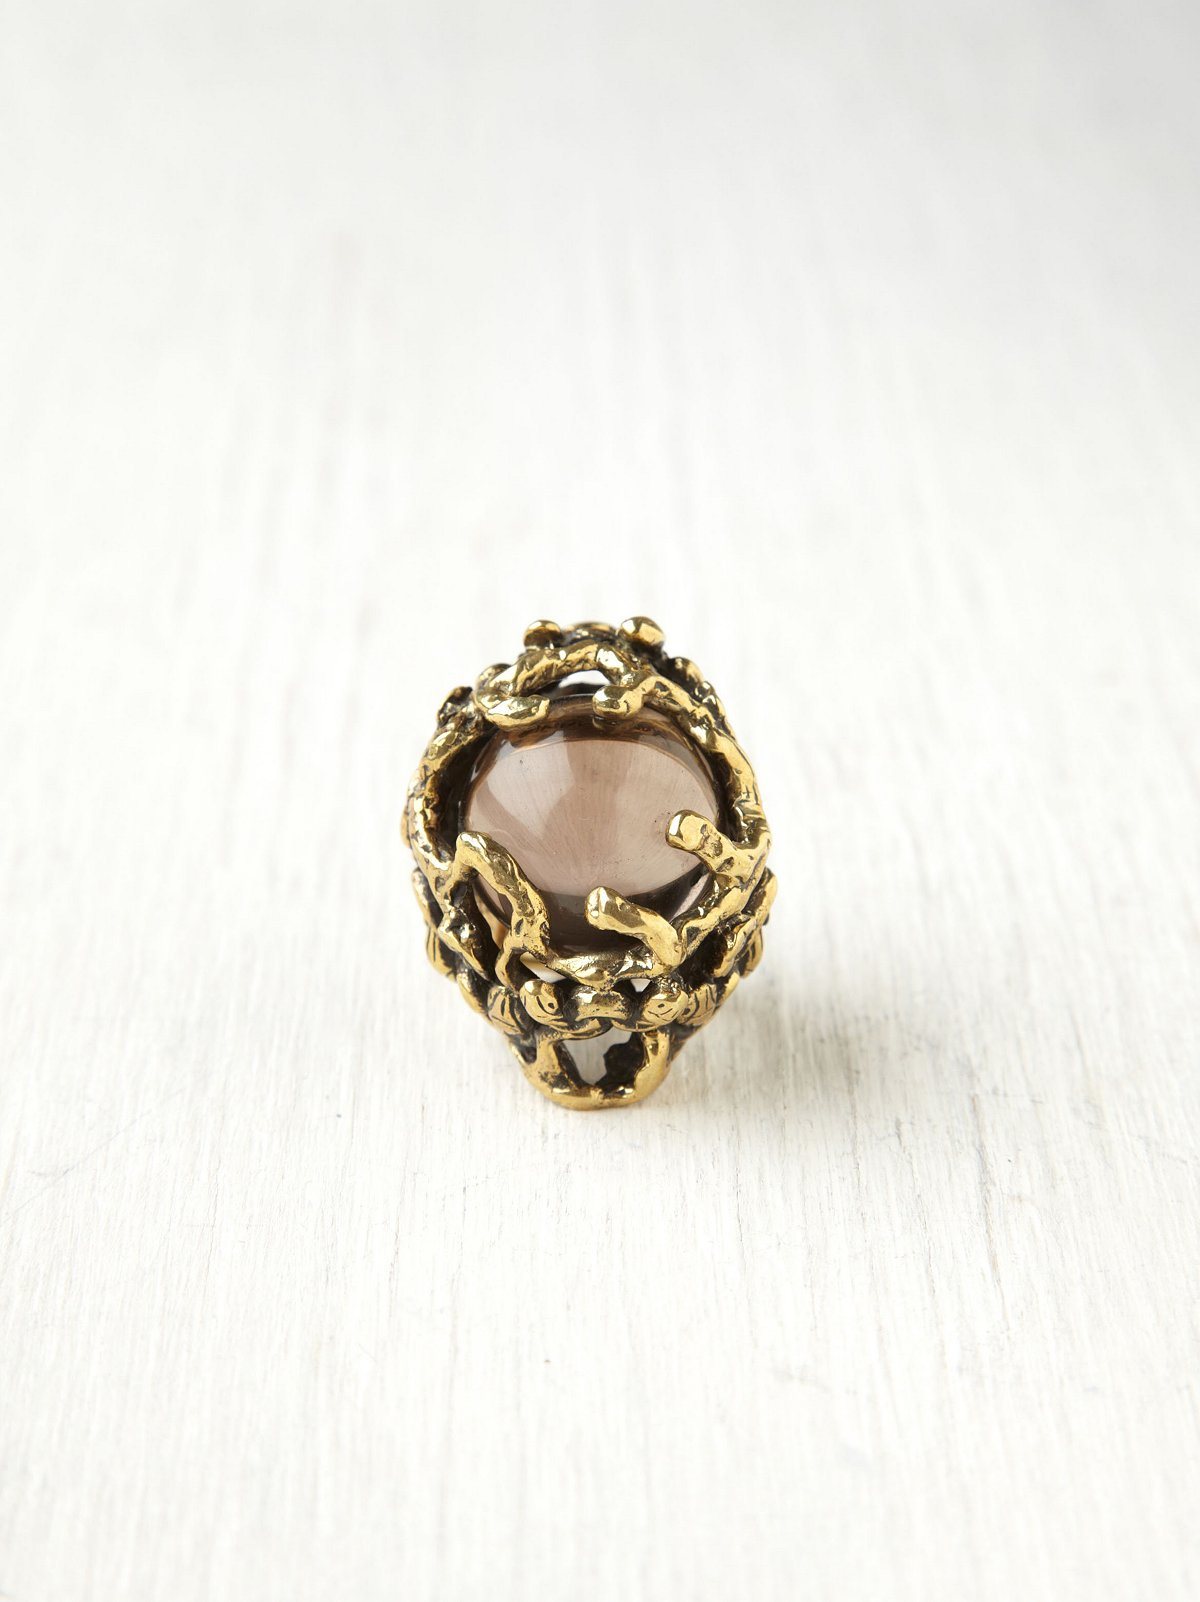 Astral Plane Ring